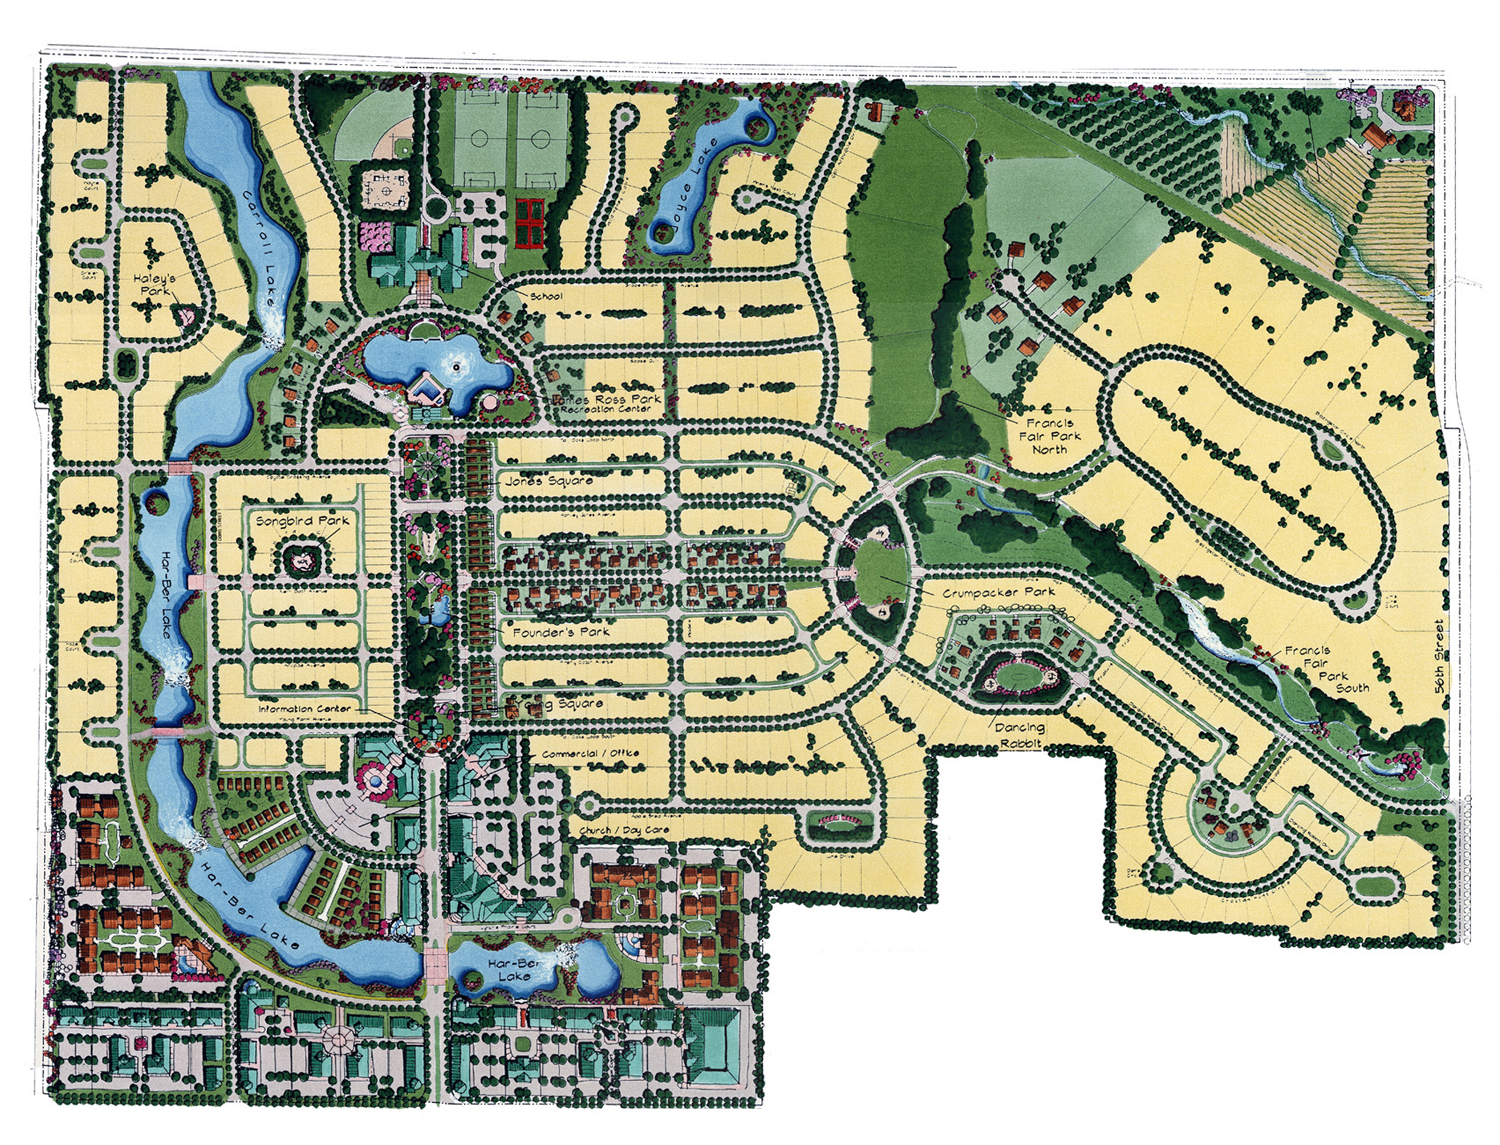 HarBer Meadows Land Plan  REVISED.jpg